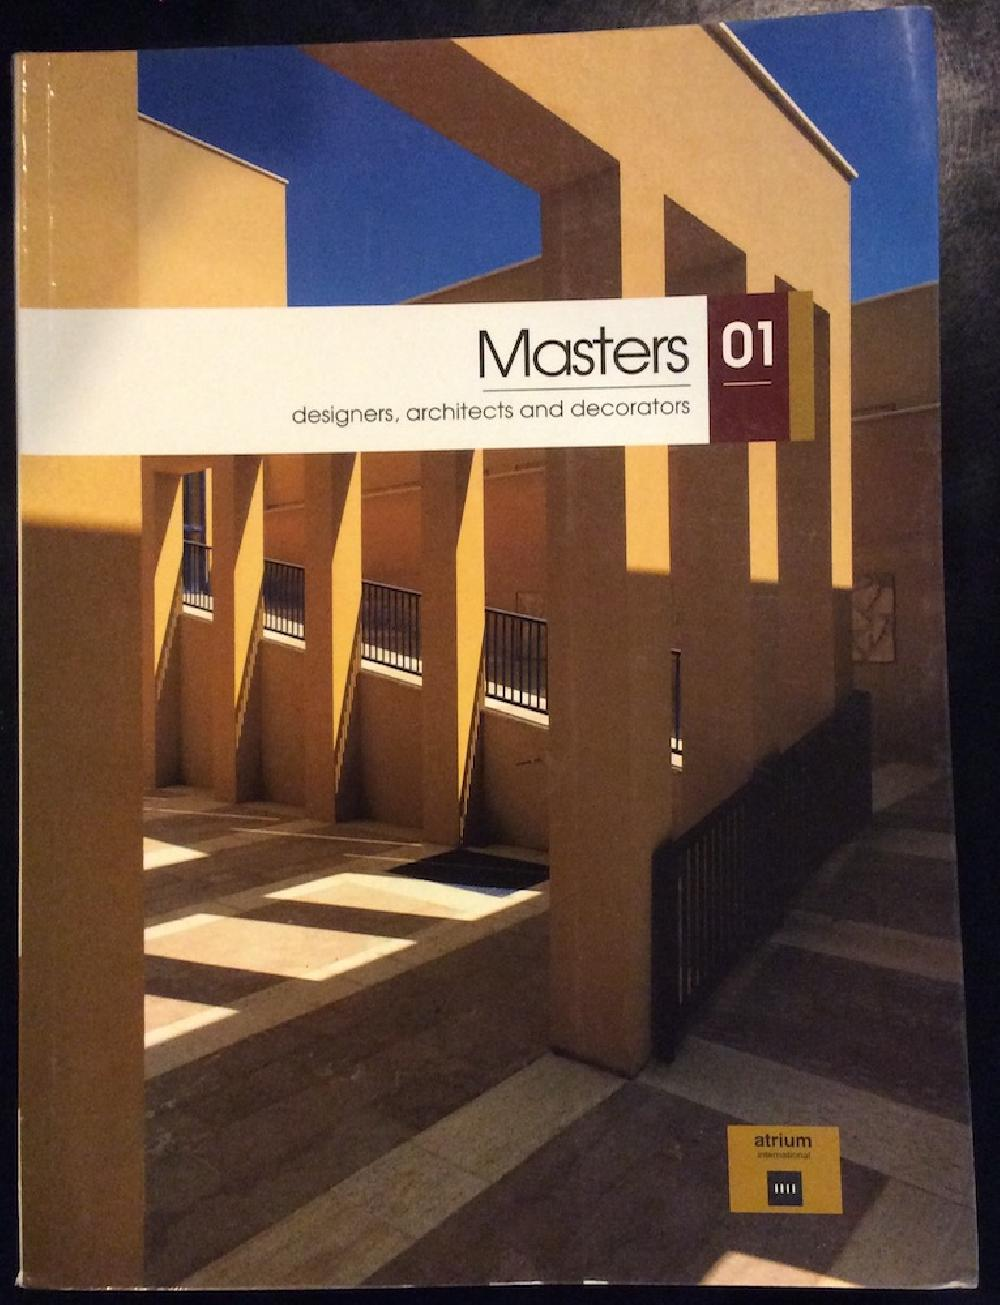 Masters 01